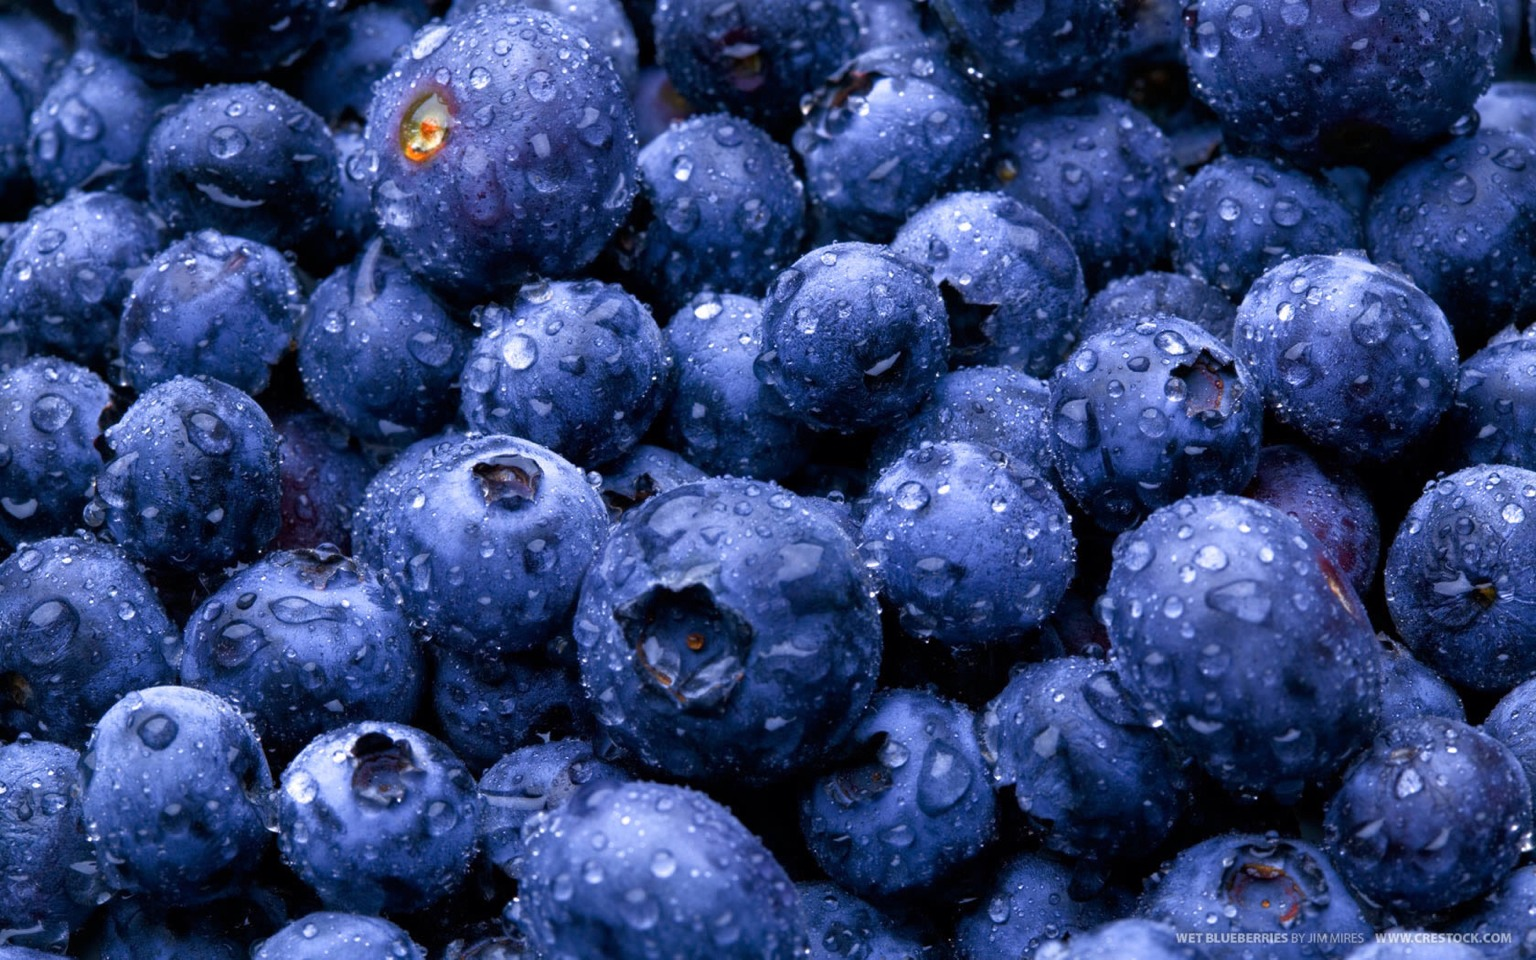 Blueberries Blueberries don't just boost your mental and cardiovascular health: They're packed with polyphenols, a powerful antioxidant which help preserve your skin's collagen and elasticity by fighting free radicals.